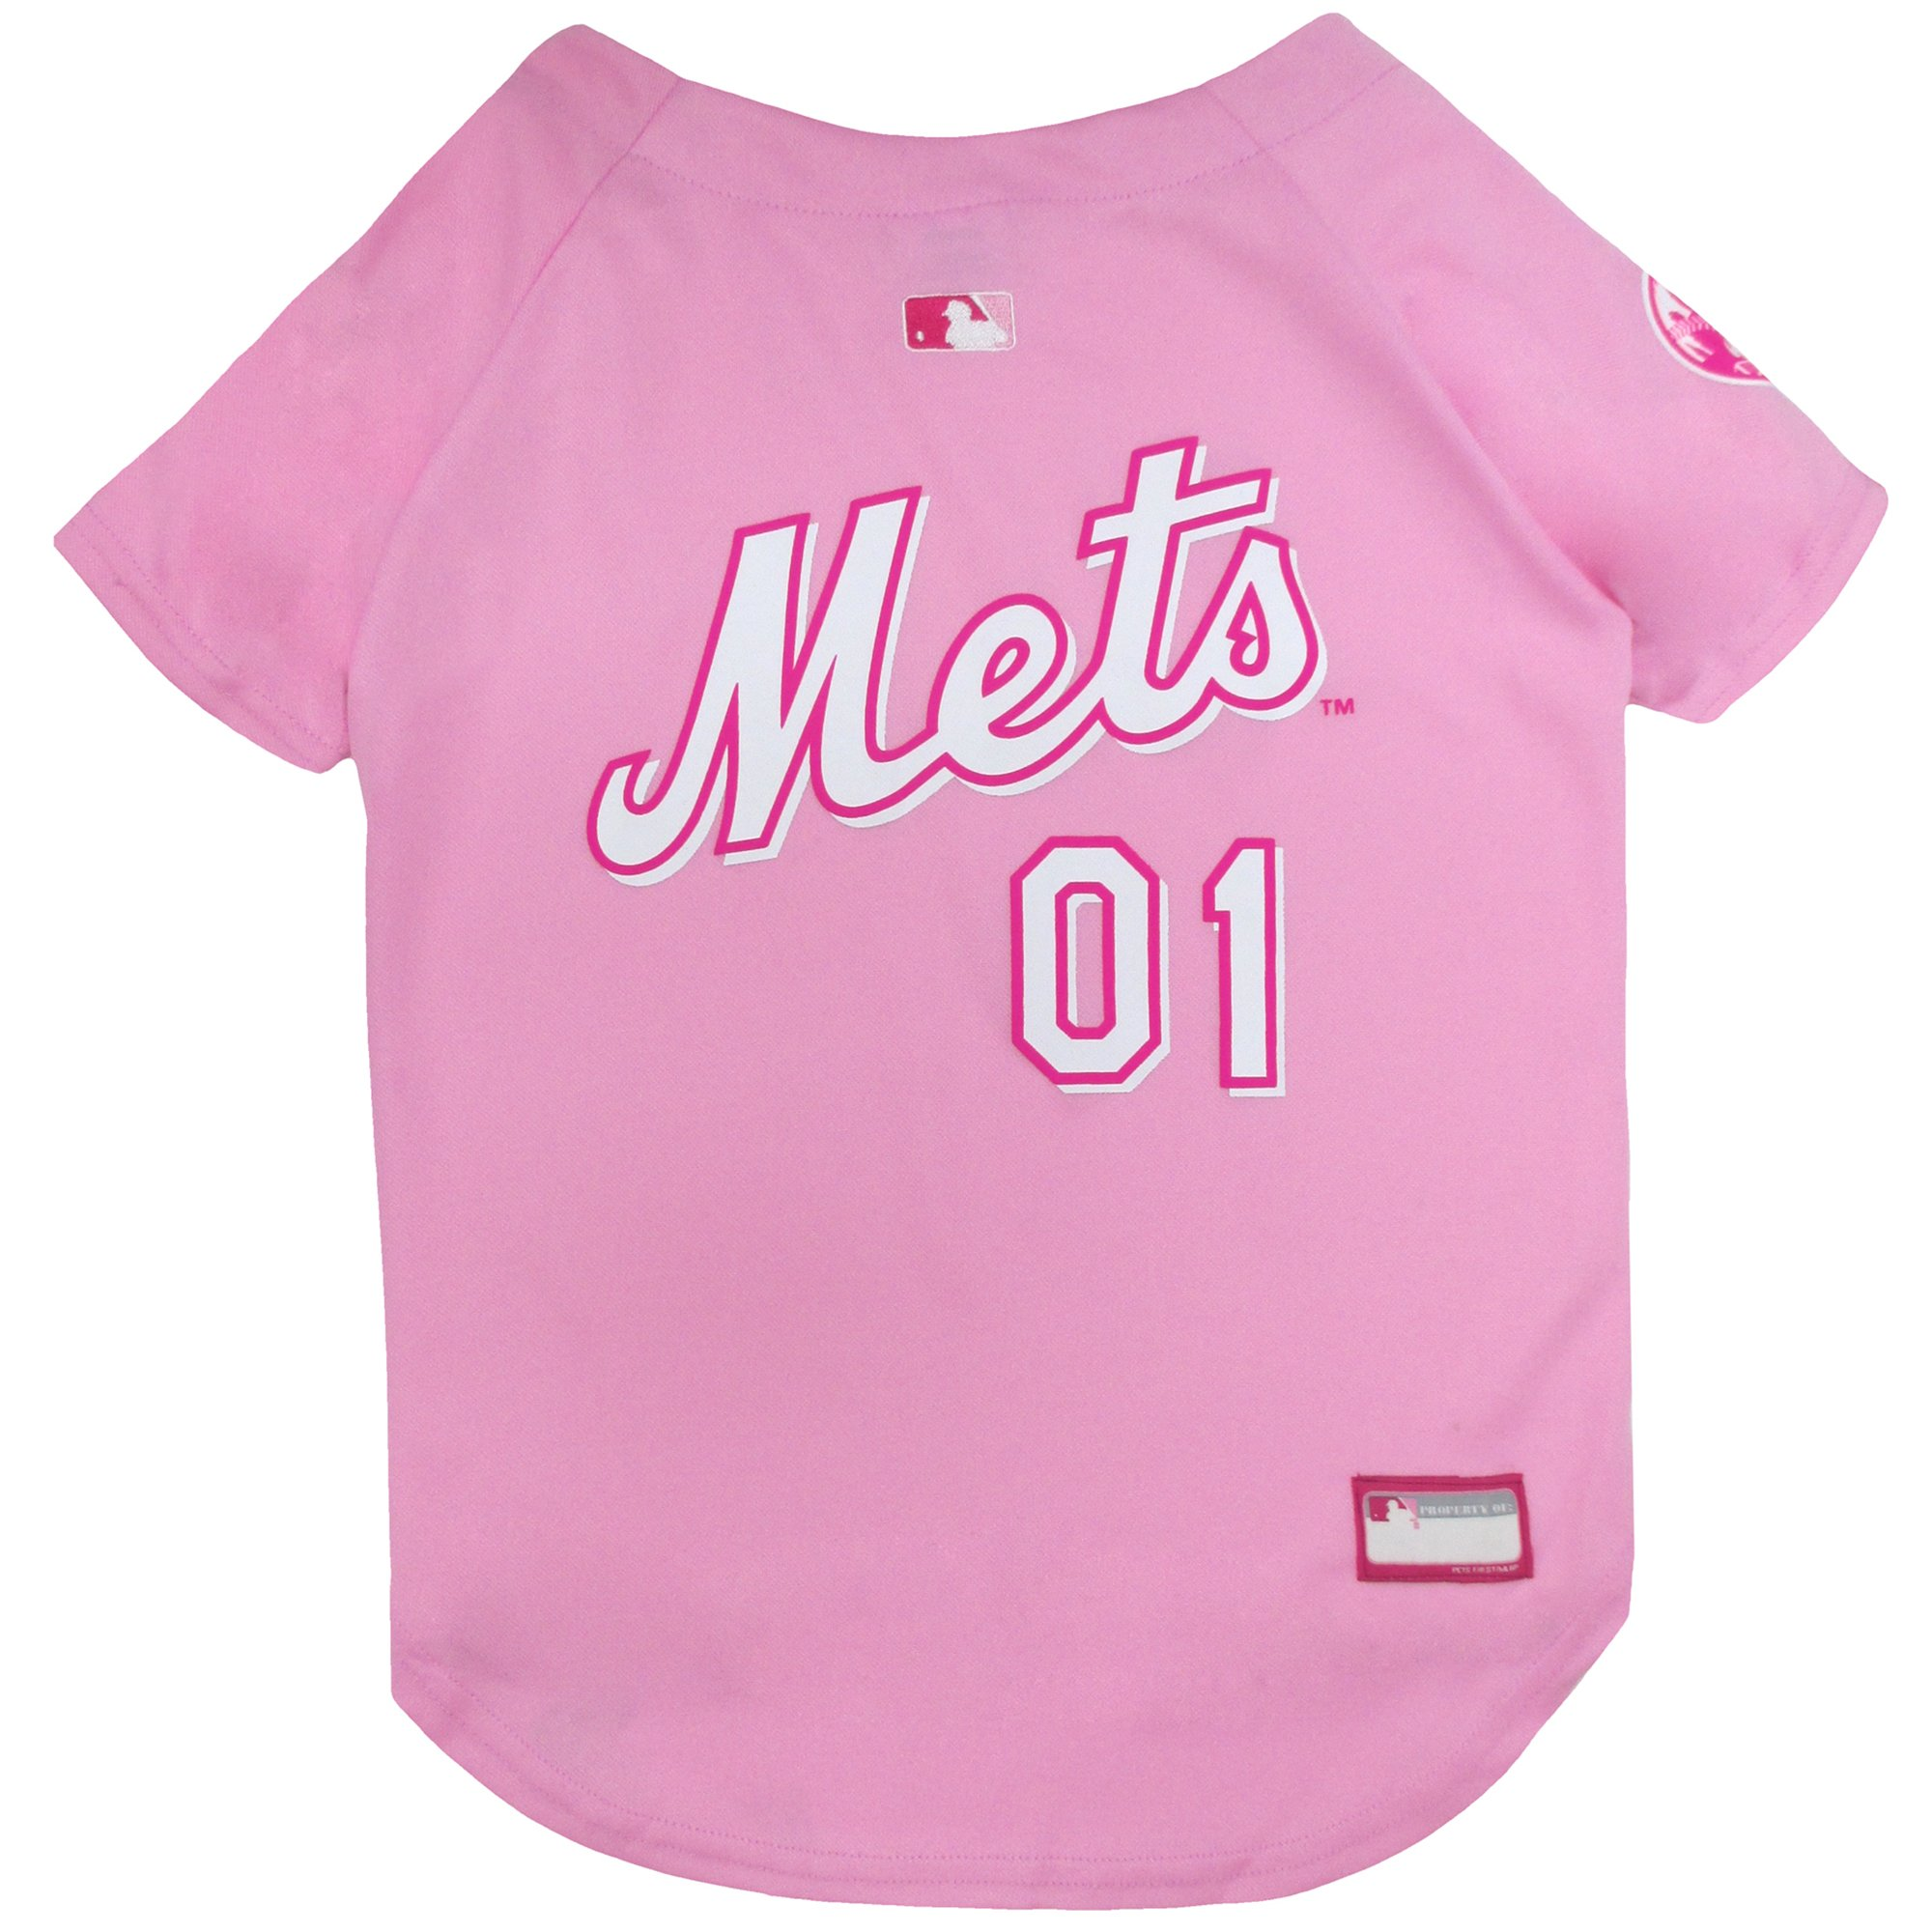 buy online 25f3a 9ae24 Pets First Pink New York Mets Jersey, X-Small | Petco